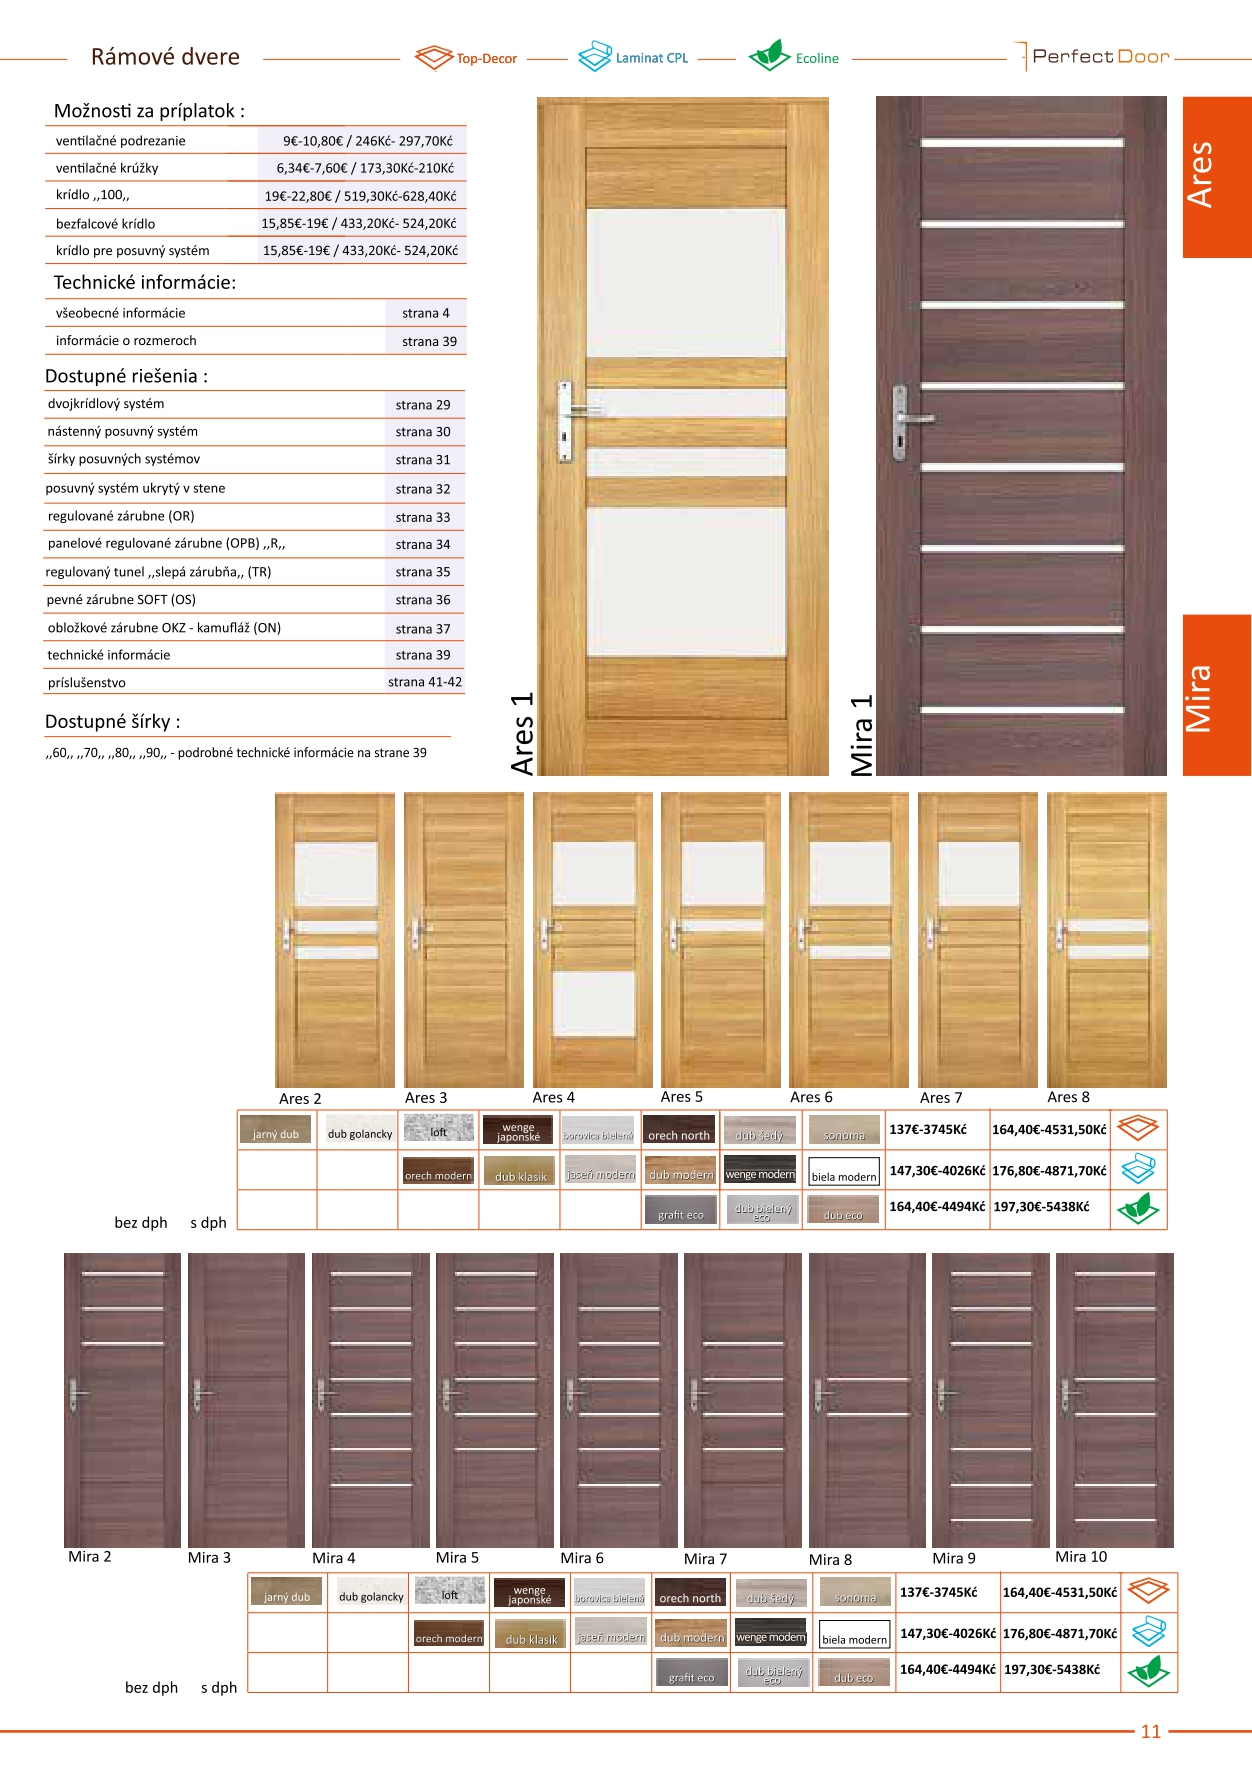 Perfectdoor katalog  1 2019 pages-to-jpg-0011